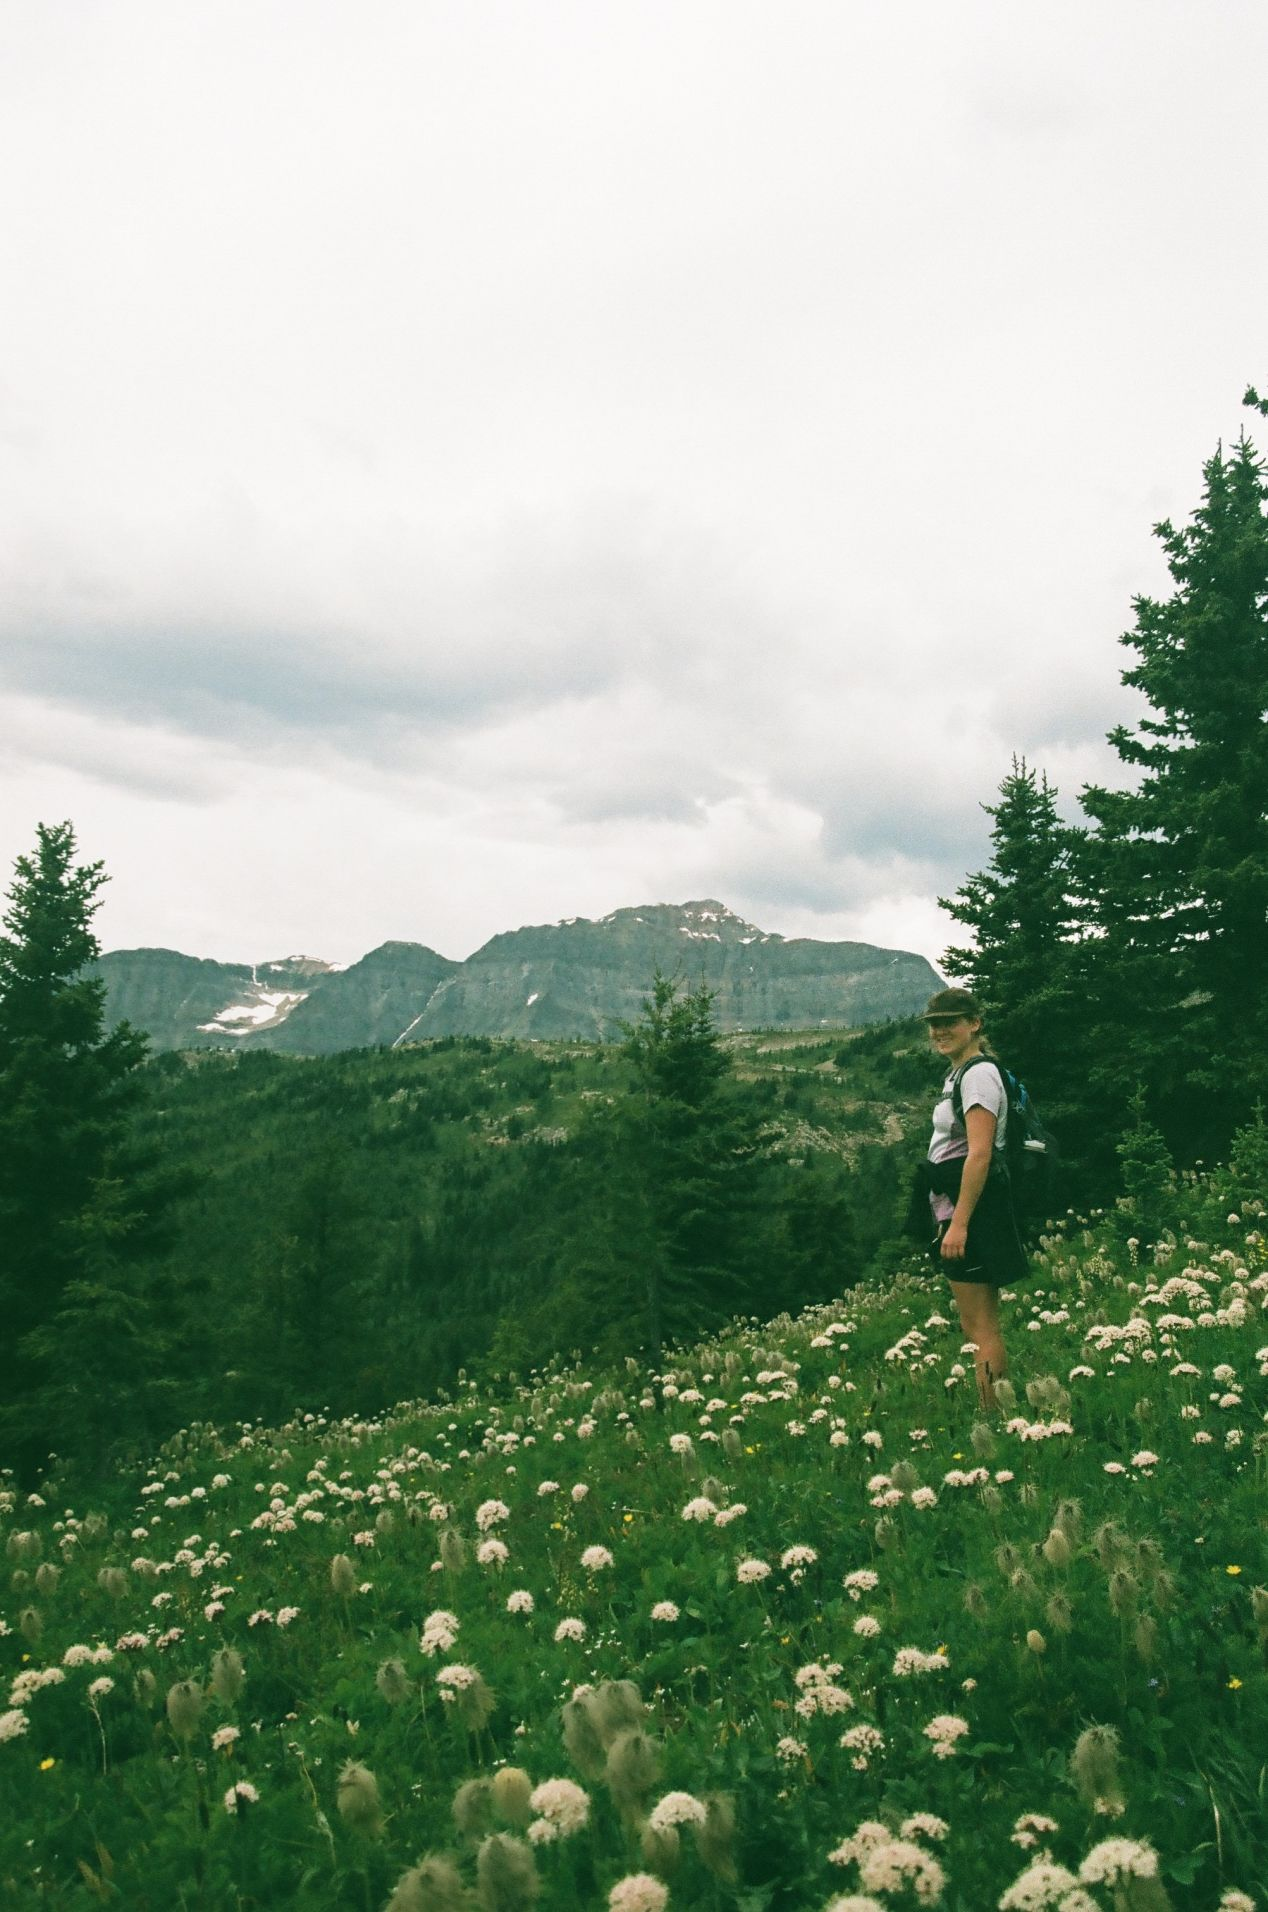 The wildflowers are beautiful at Sunshine Village in the summertime.